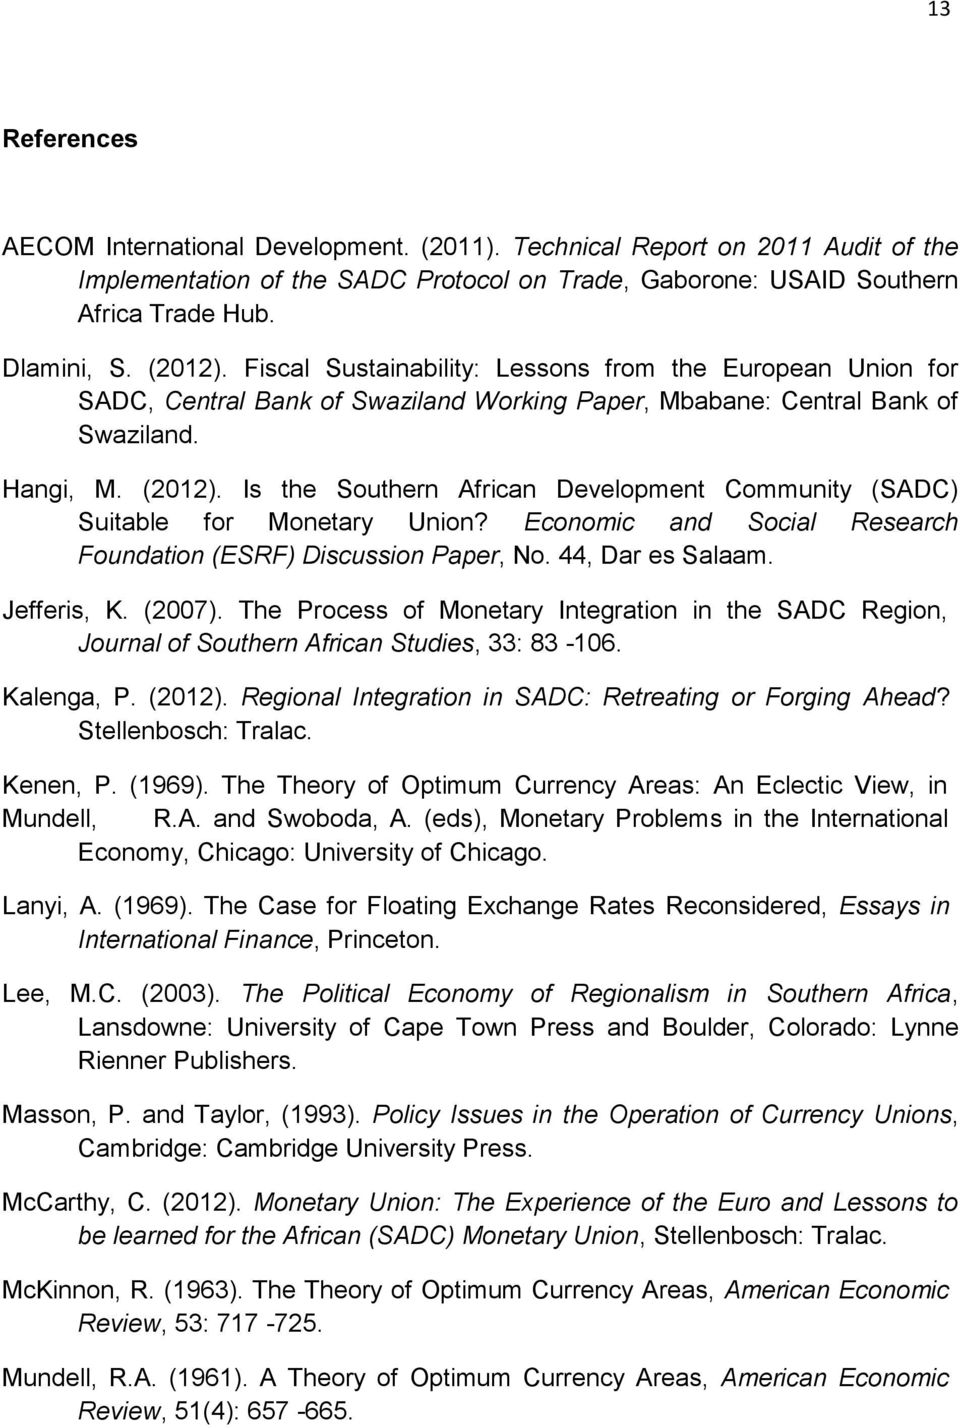 Is the Southern African Development Community (SADC) Suitable for Monetary Union? Economic and Social Research Foundation (ESRF) Discussion Paper, No. 44, Dar es Salaam. Jefferis, K. (2007).